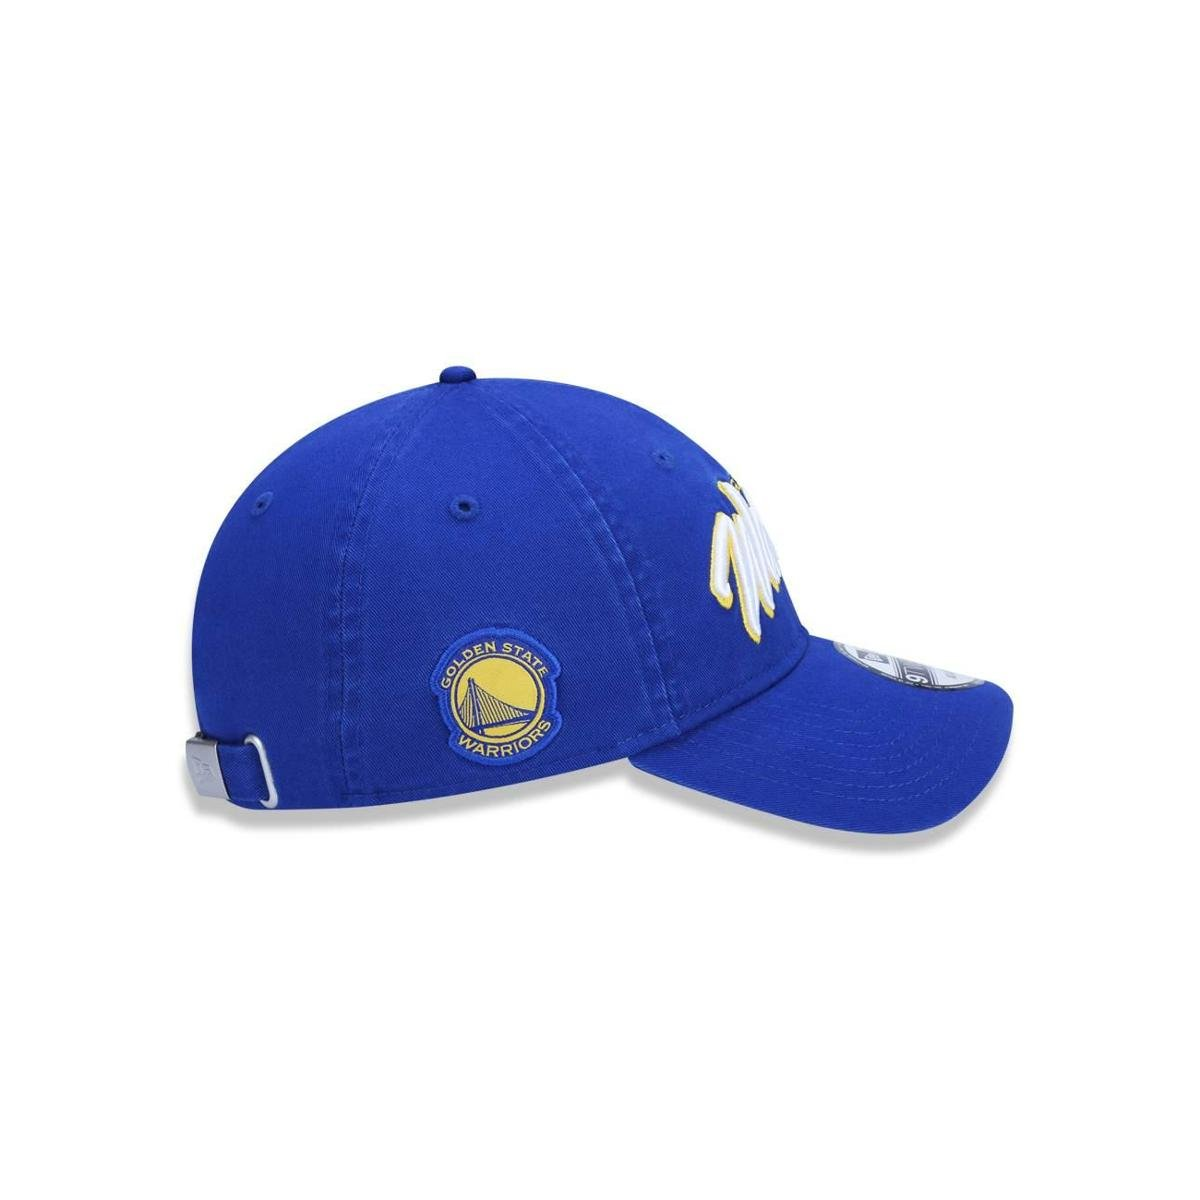 Boné 920 Golden State Warriors NBA Aba Curva Strapback New Era ... 90c7fd9d27f